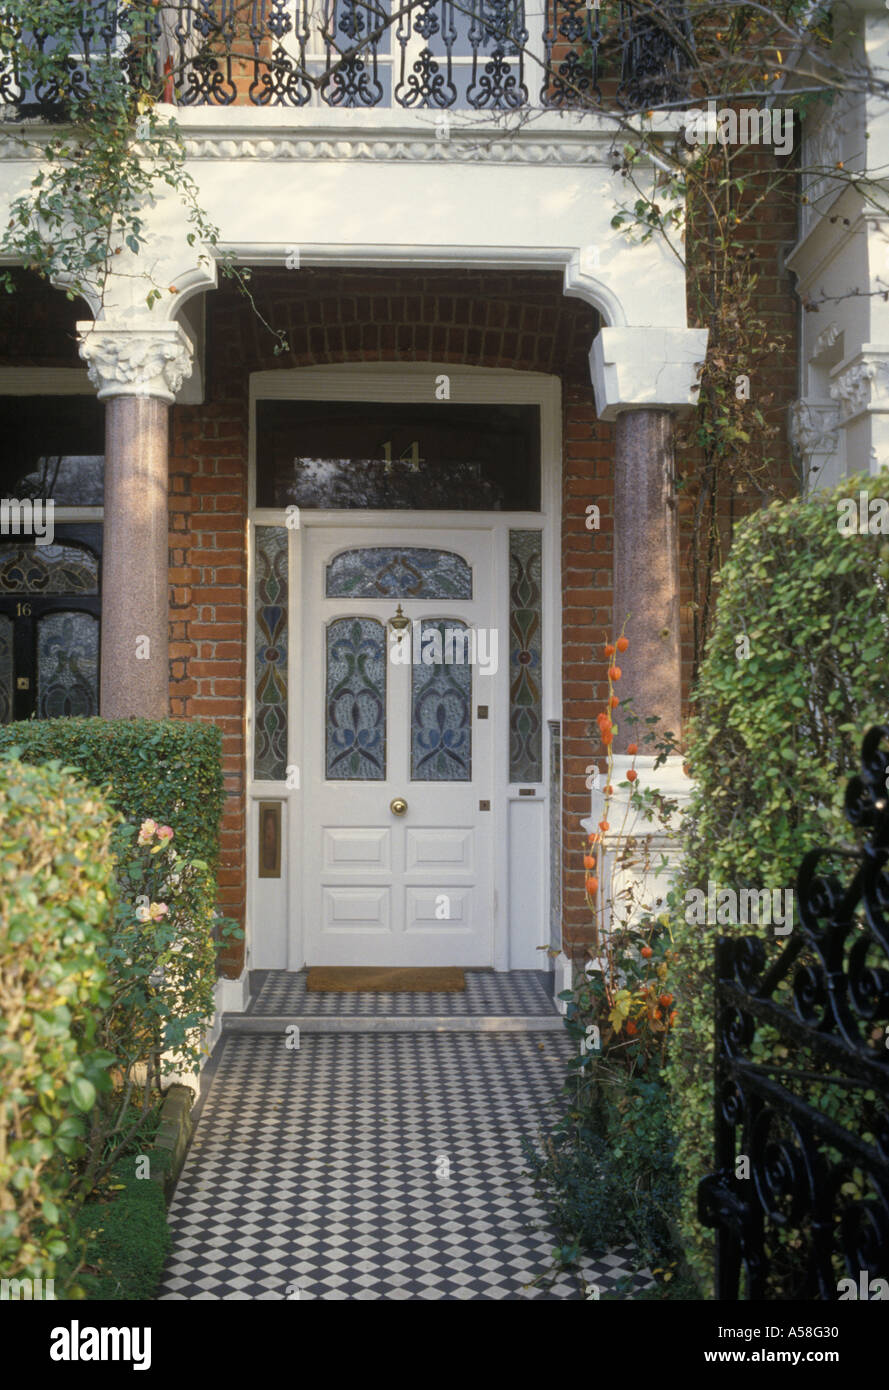 Fulham South West London UK Typical Front Door Porch And